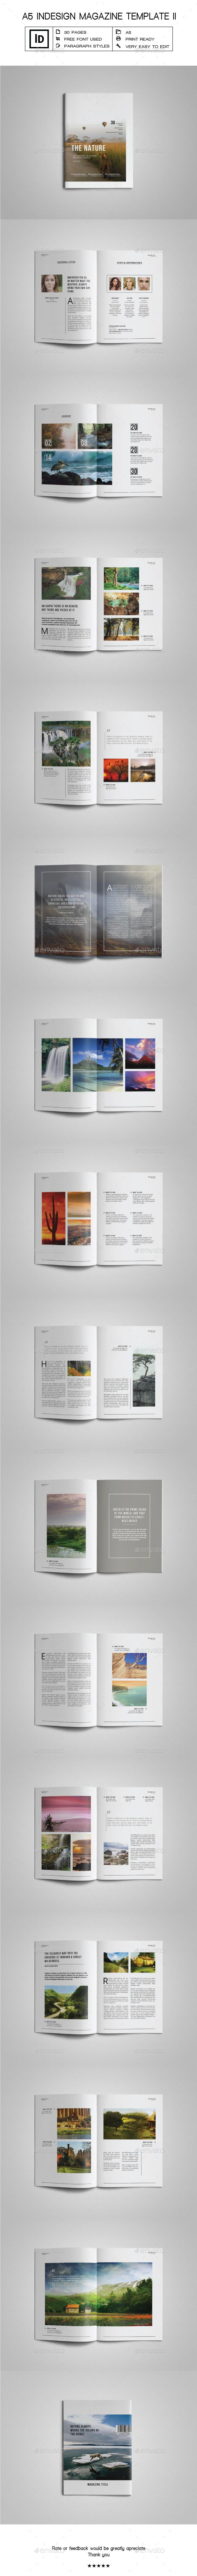 A5 Indesign Magazine Template II - Magazines Print Templates Download here : https://graphicriver.net/item/a5-indesign-magazine-template-ii/19308879?s_rank=48&ref=Al-fatih